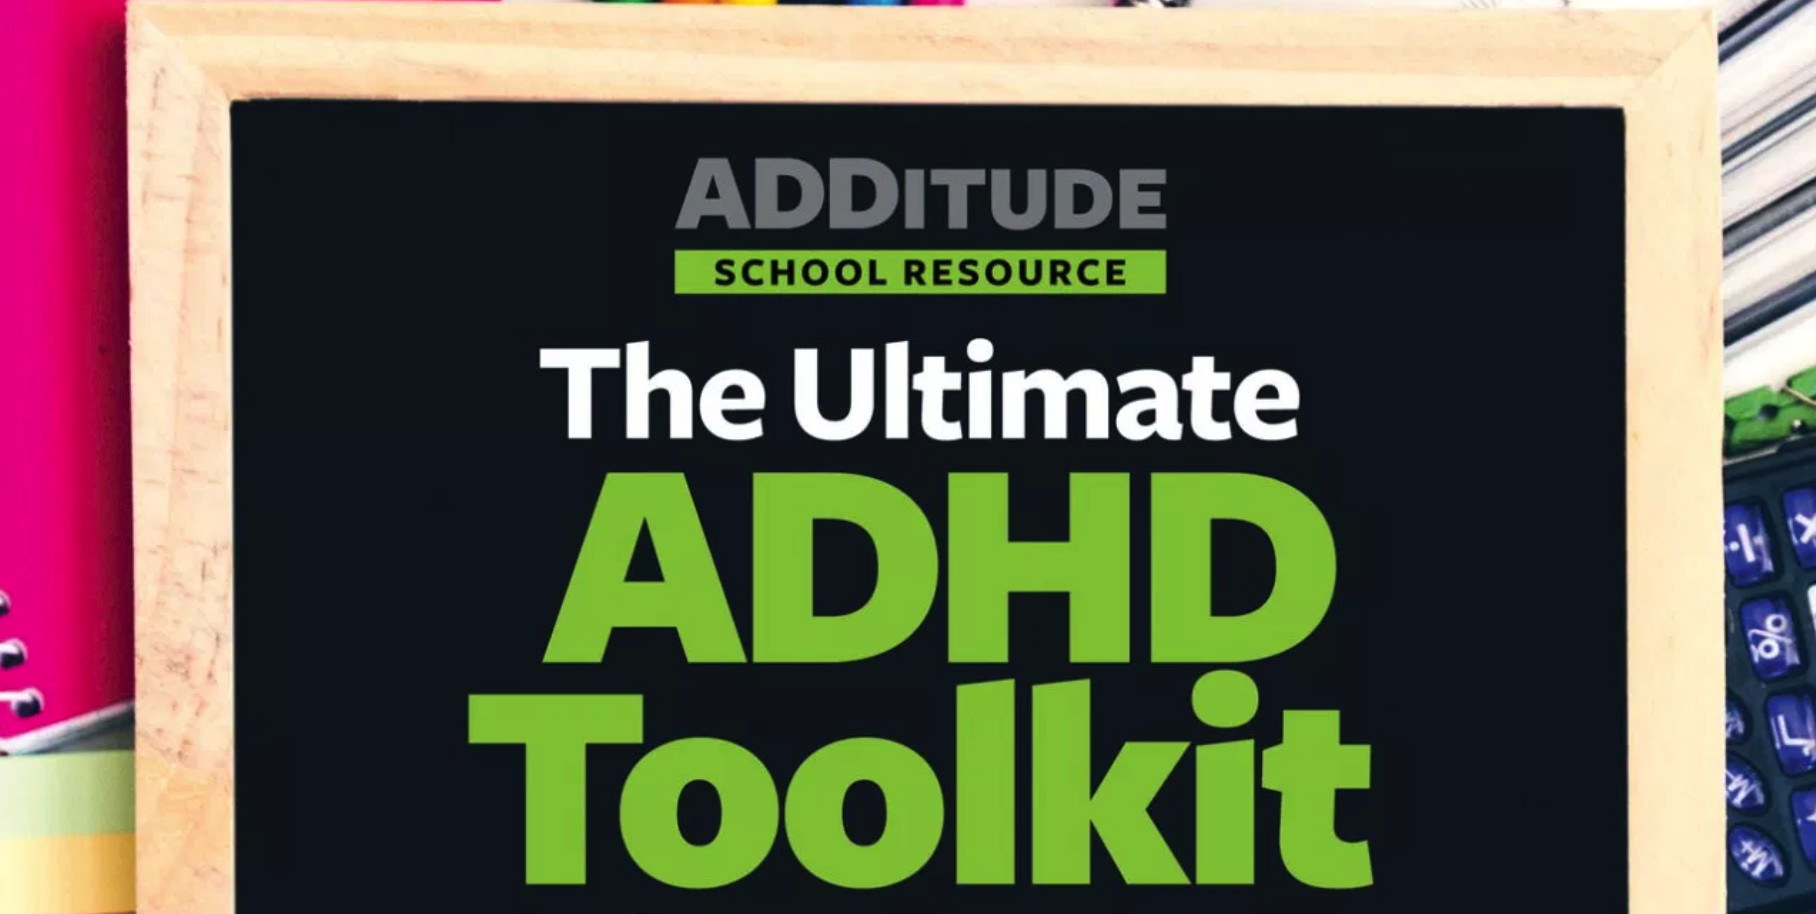 The Ultimate ADHD Toolkit for Parents and Teachers:  Fourteen invaluable tools — checklists, charts, worksheets, letters, parent-teacher conversation starters, and more — to help you and your child team up with teachers for a successful school year.